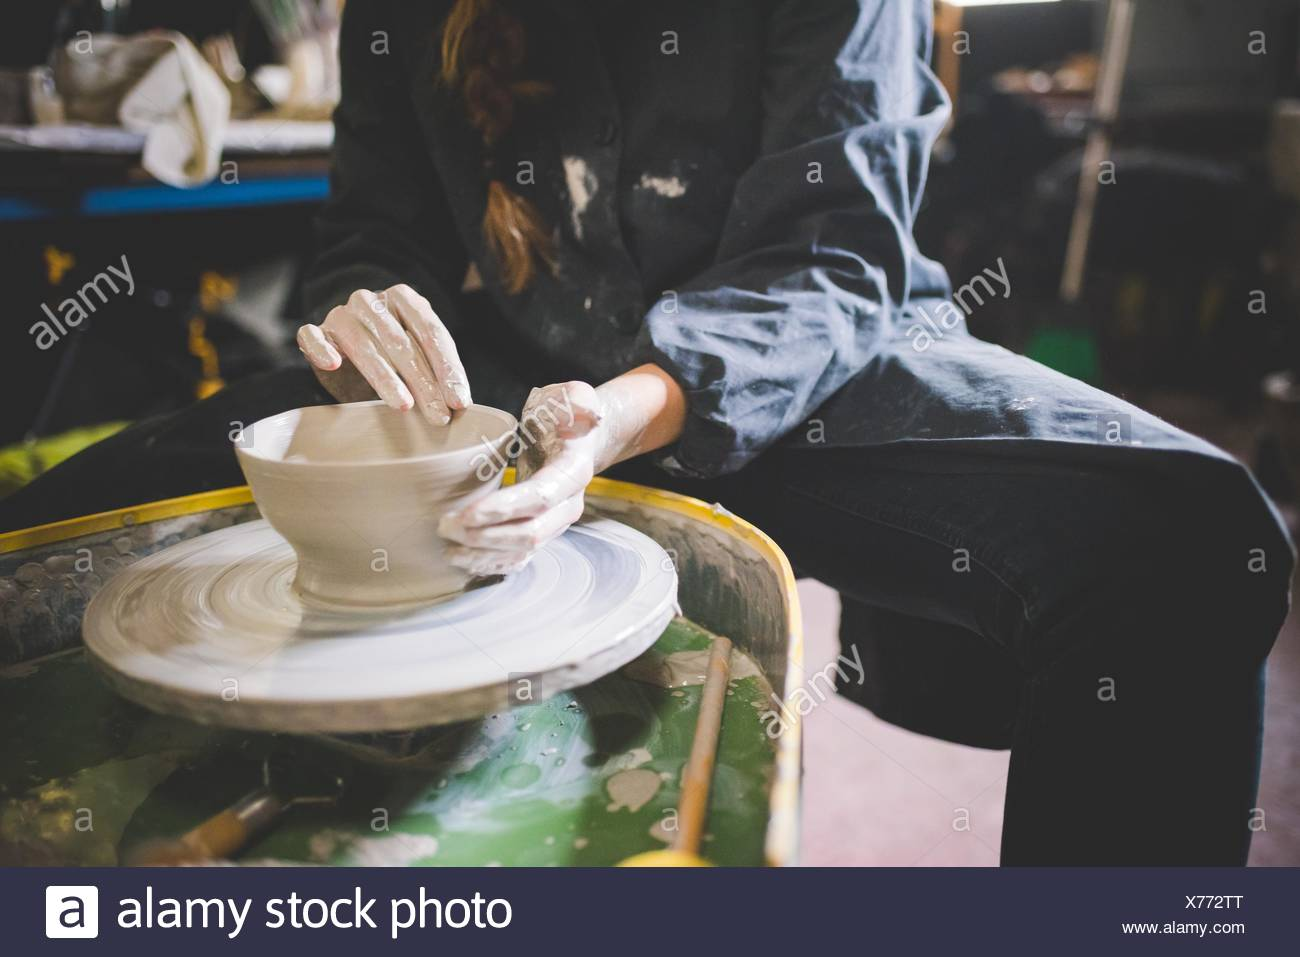 Young woman sitting at pottery wheel making clay pot - Stock Image